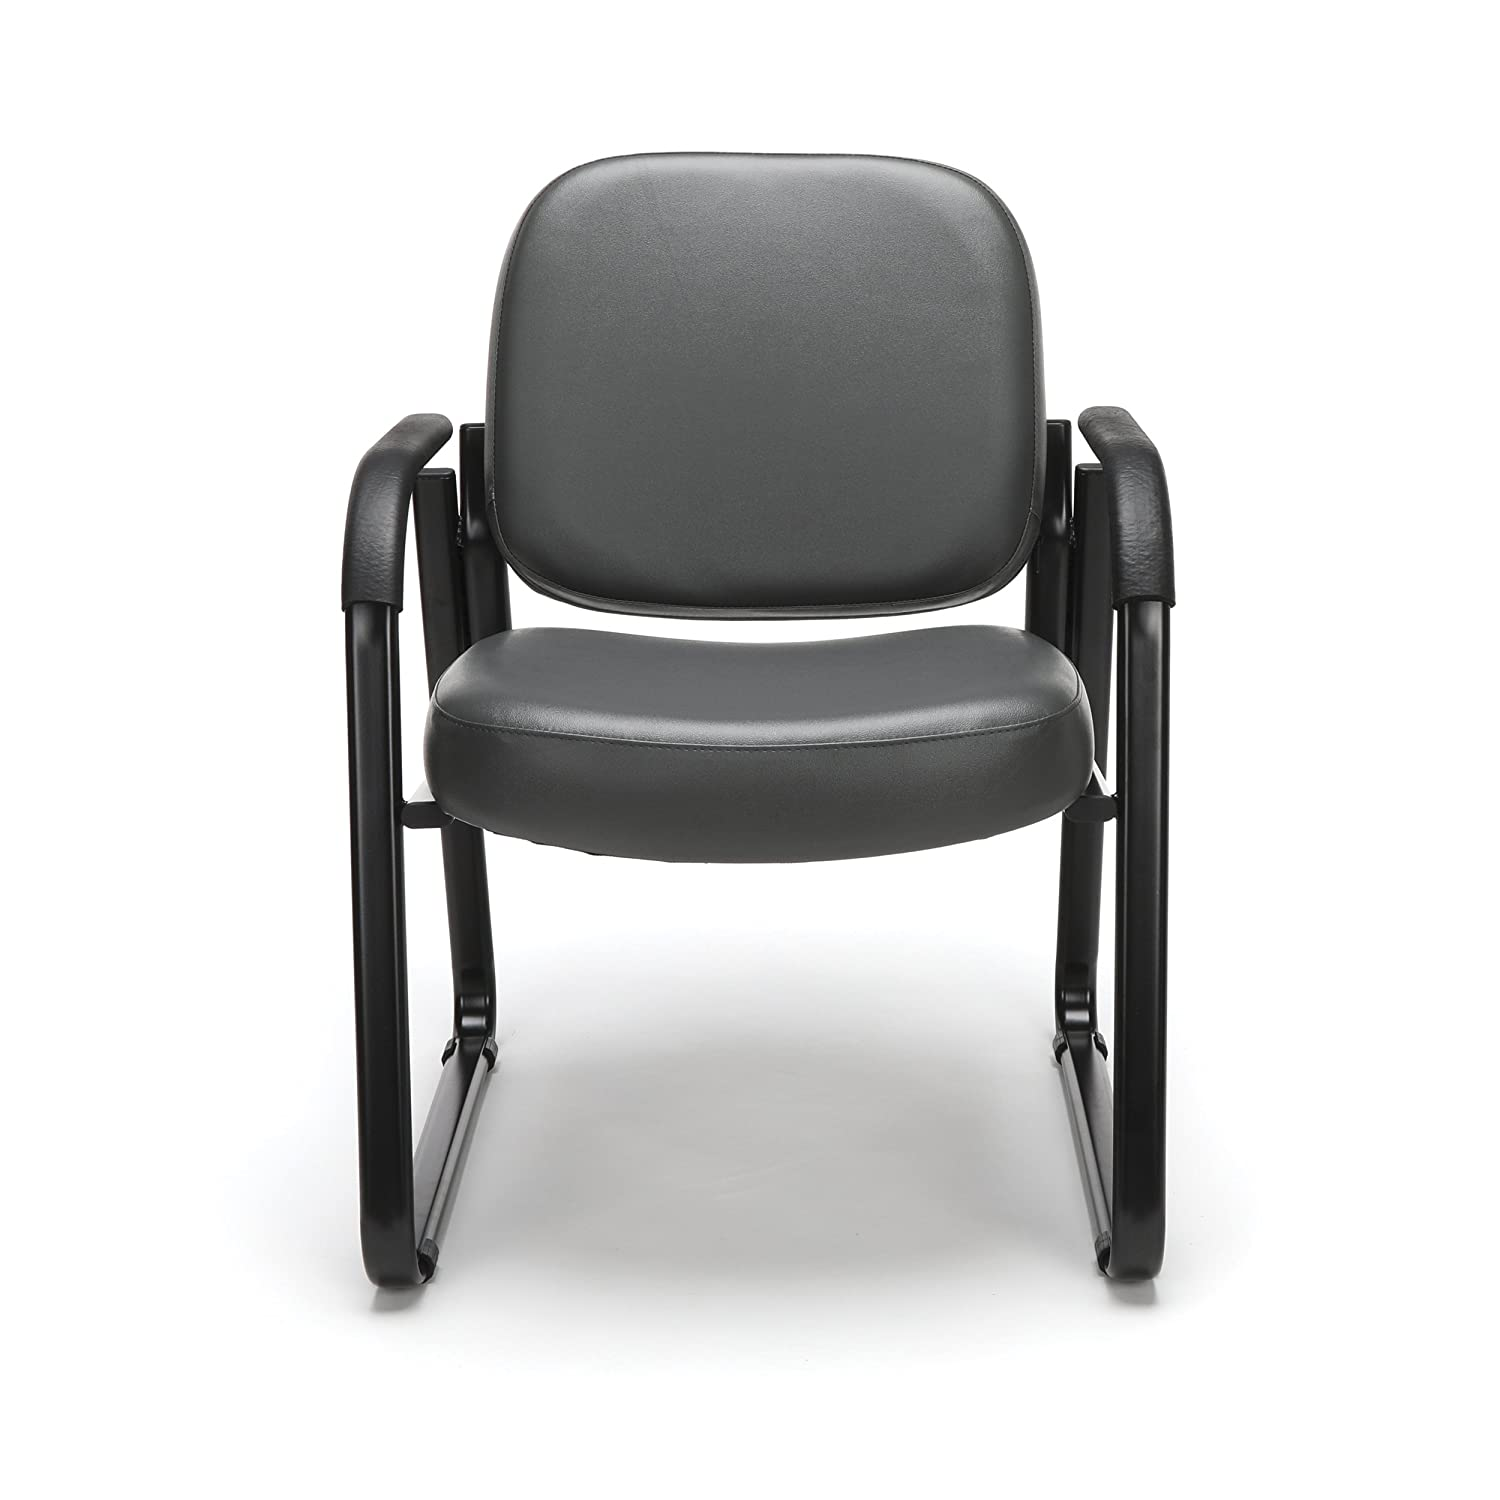 OFM Reception Chair with Arms – Anti-Microbial Anti-Bacterial Vinyl Guest Chair, Charcoal 403-VAM